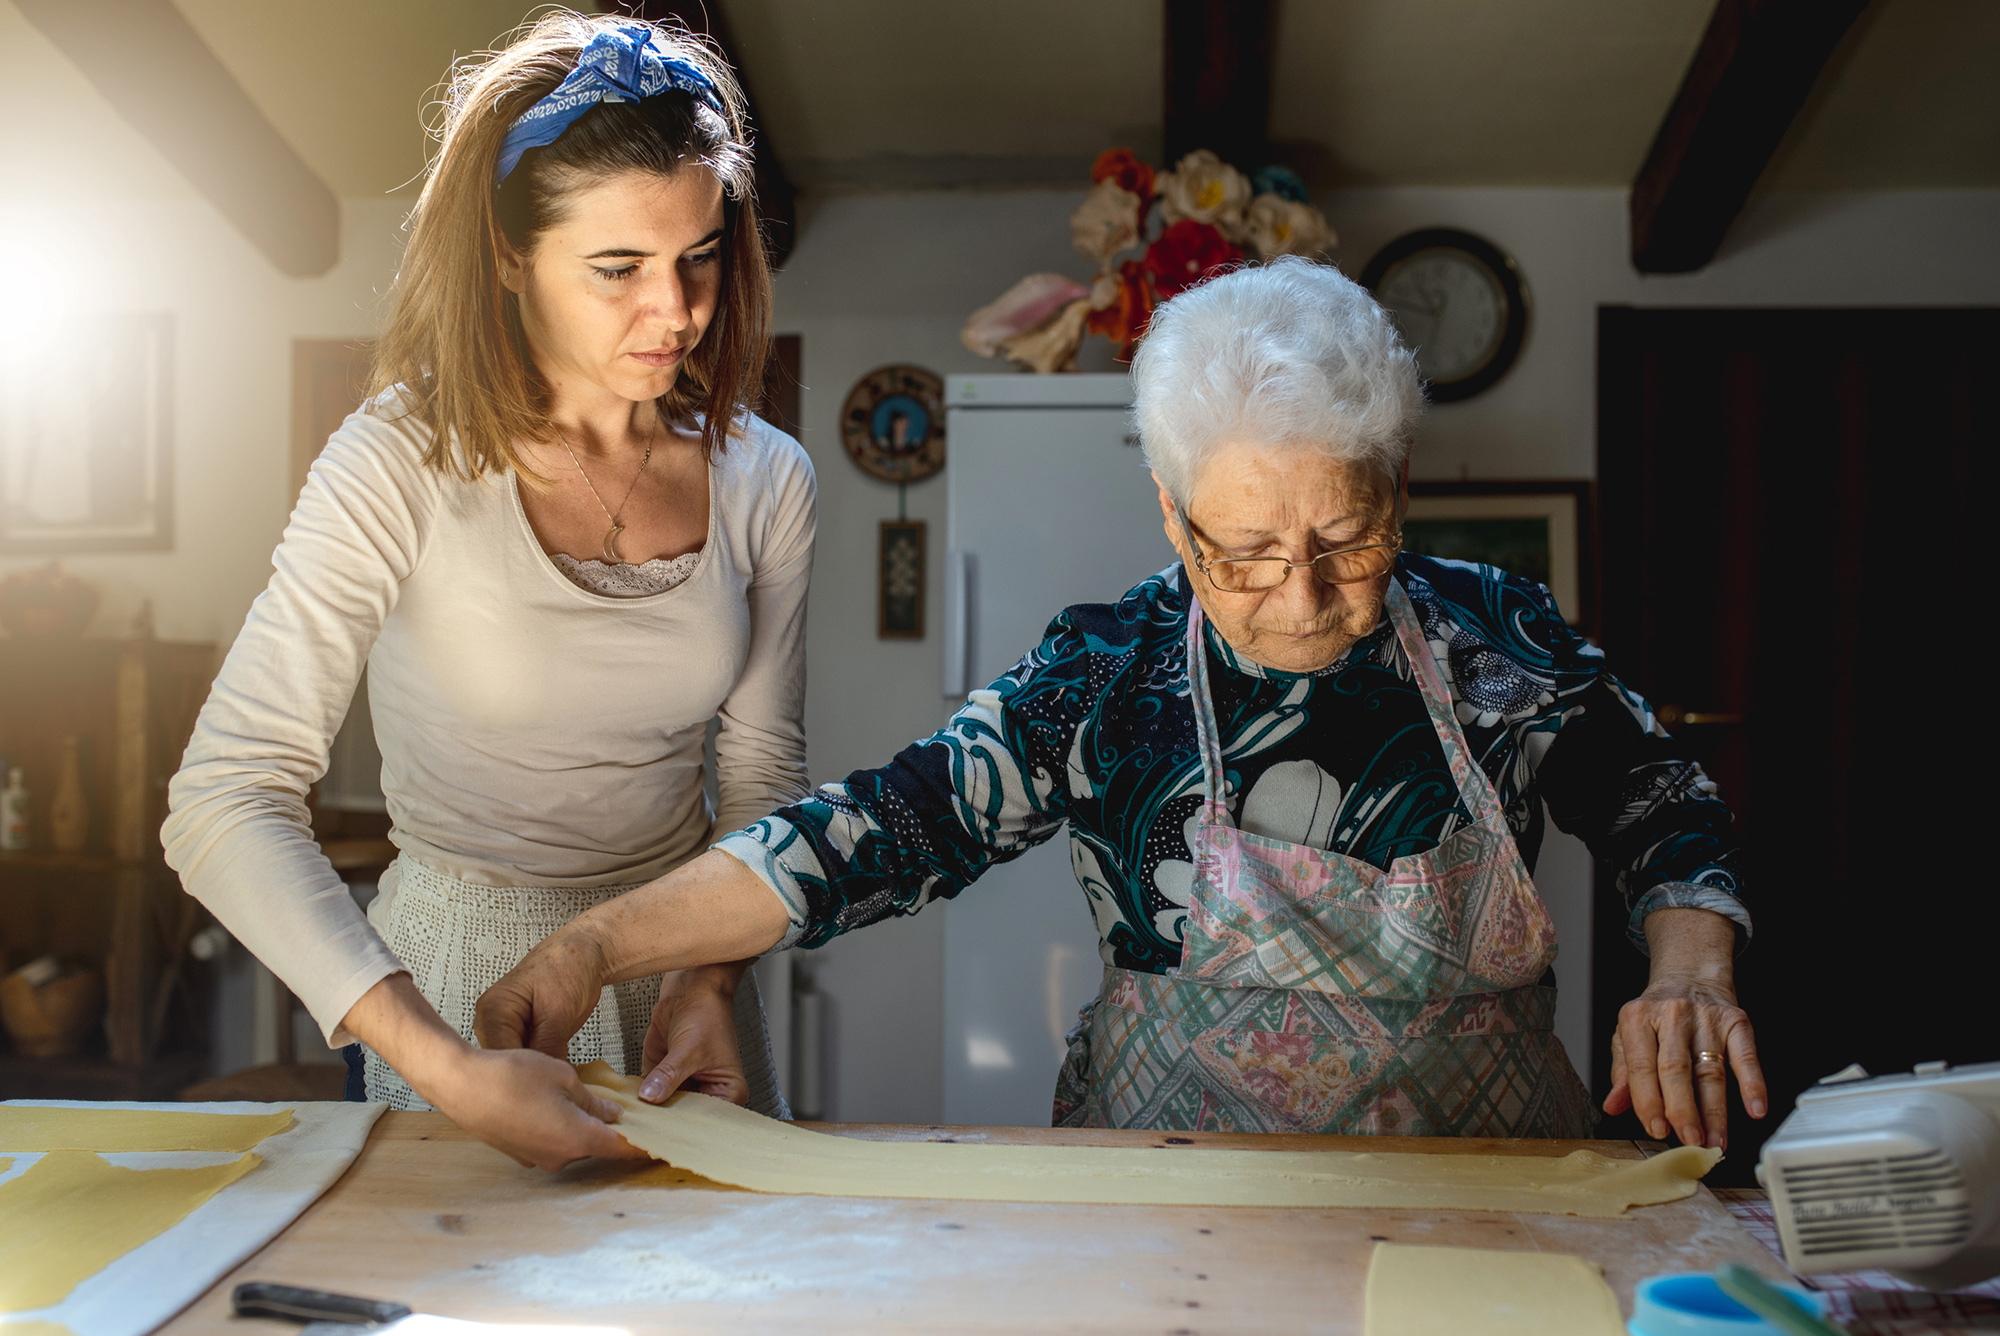 Try a pasta masterclass with an Italian nonna